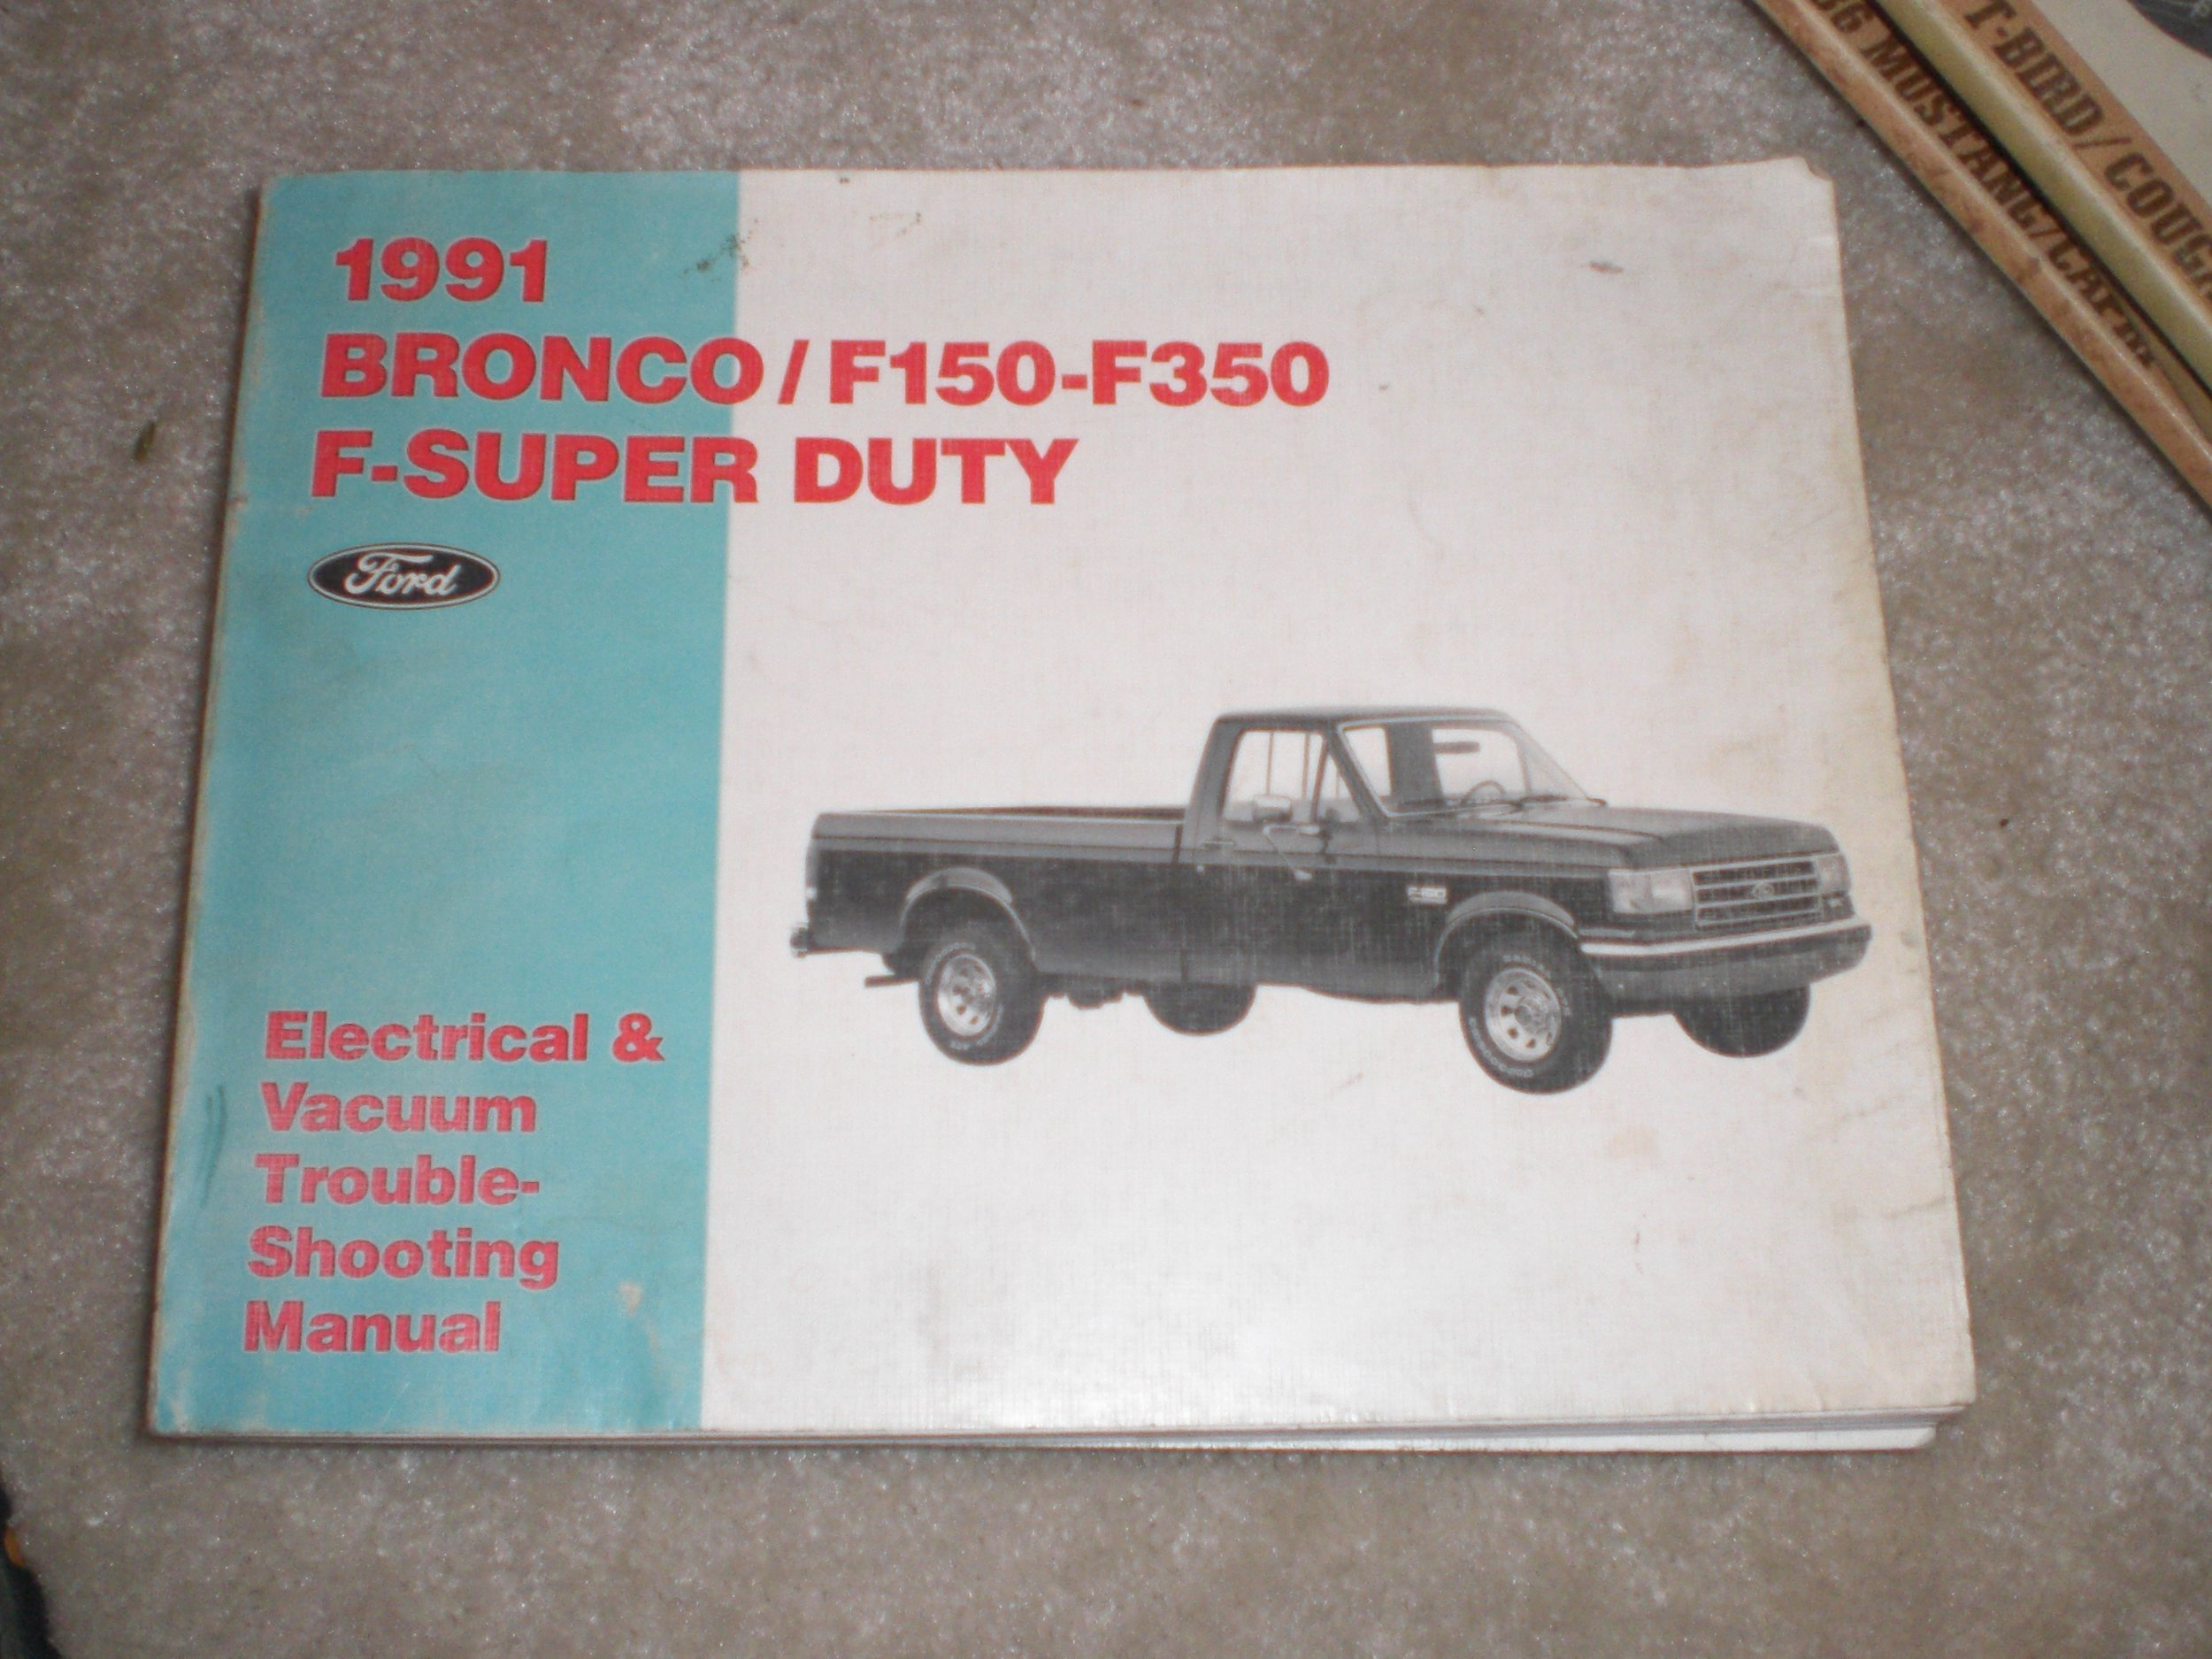 1991 ford vin location f350